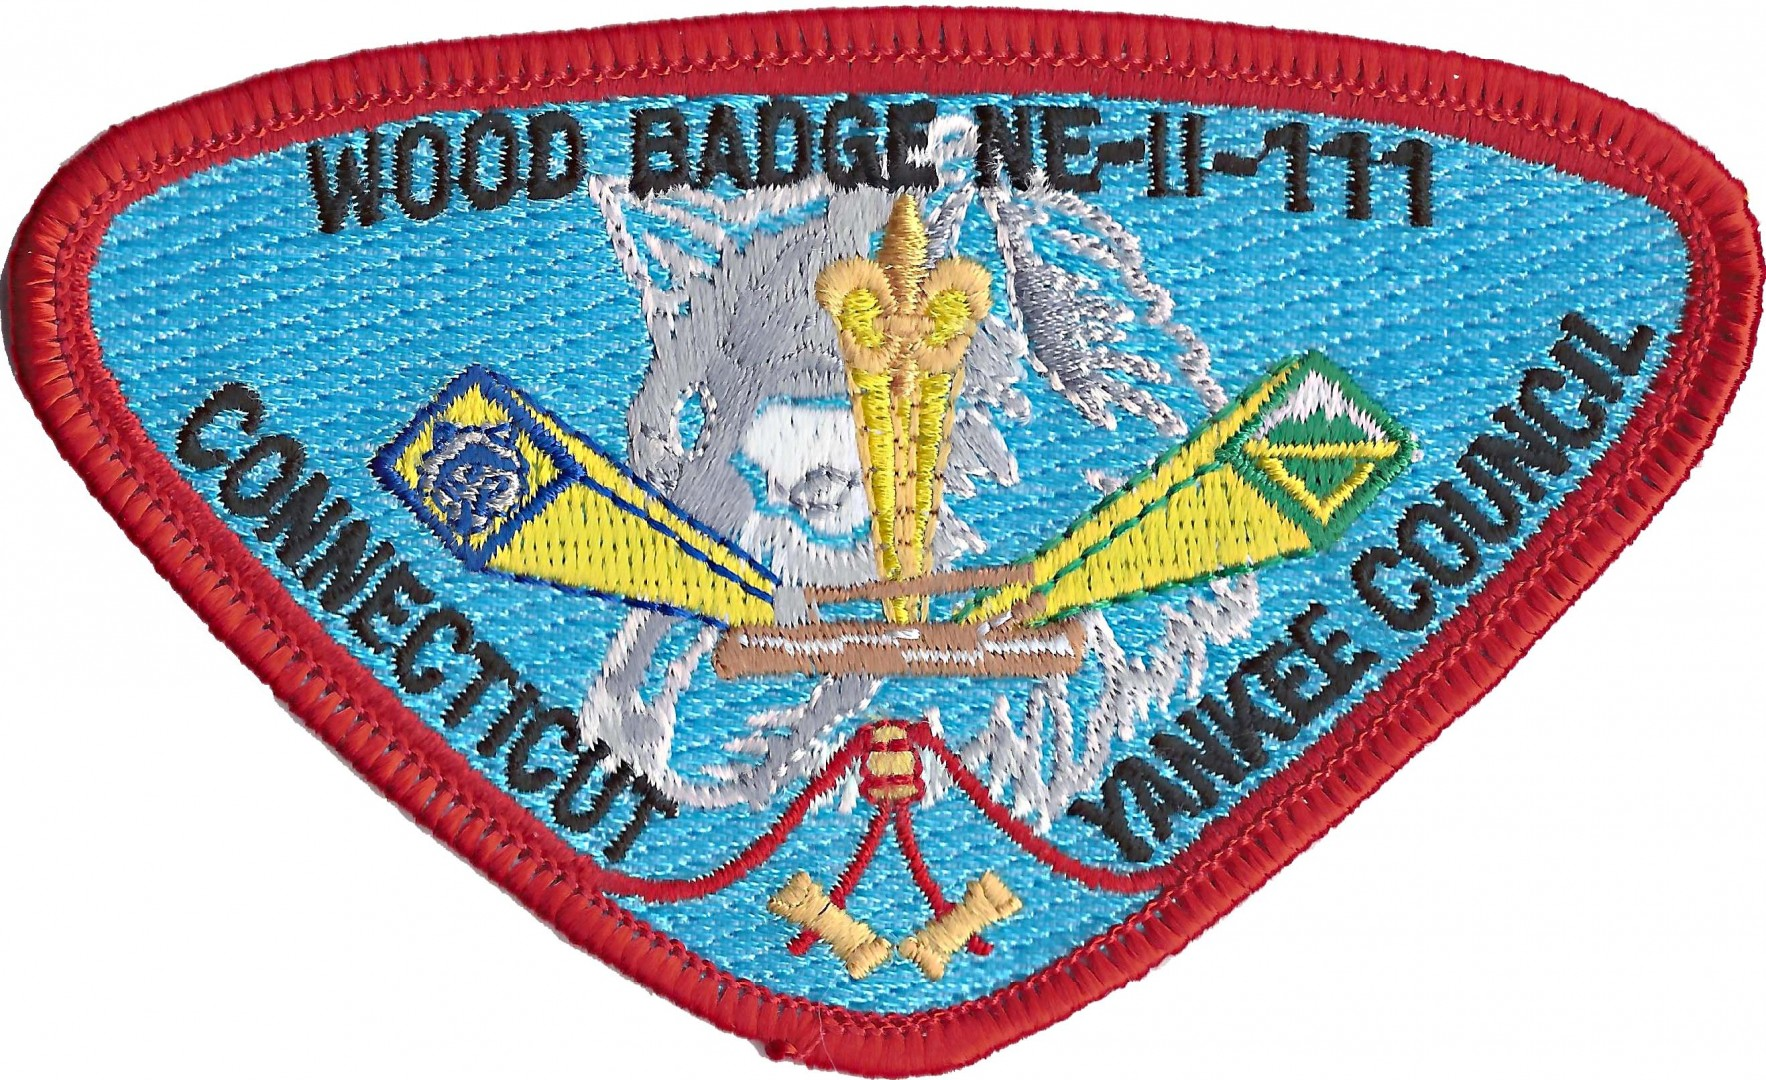 2001 wood badge course